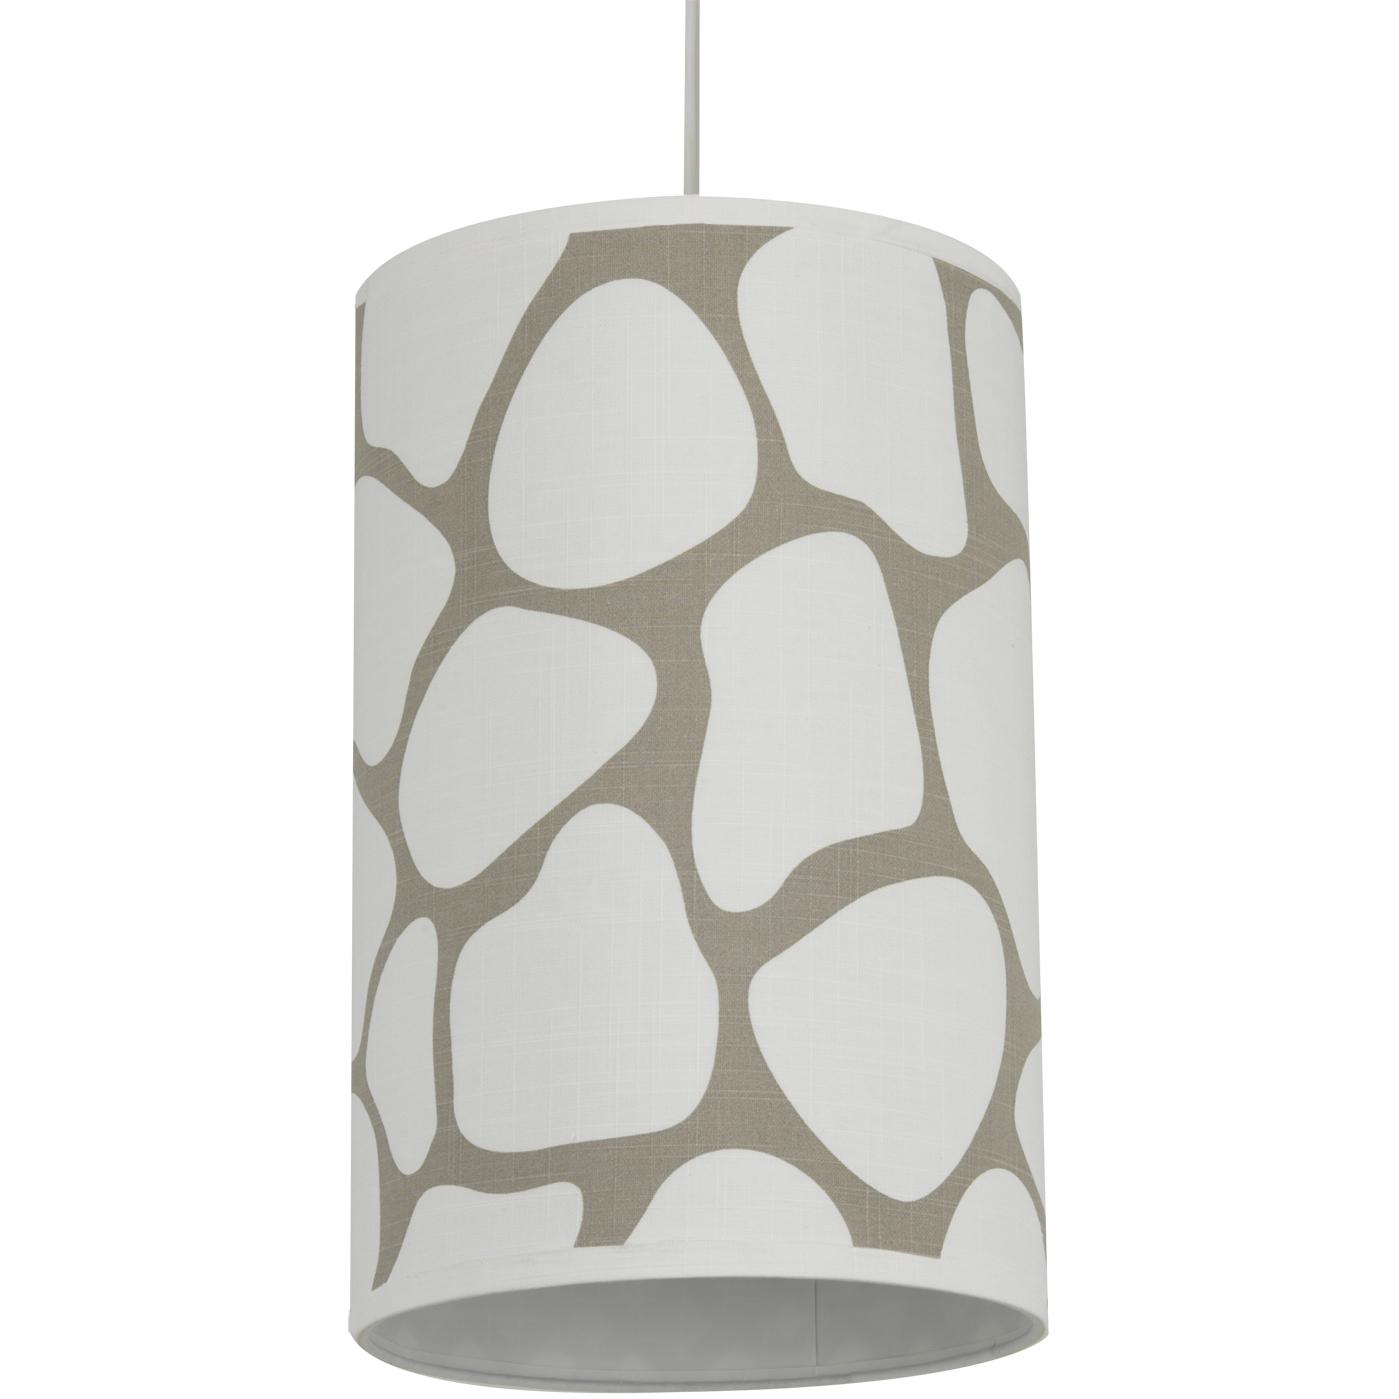 Oilo Cylinder Hanging Lamp - Cobblestone Taupe